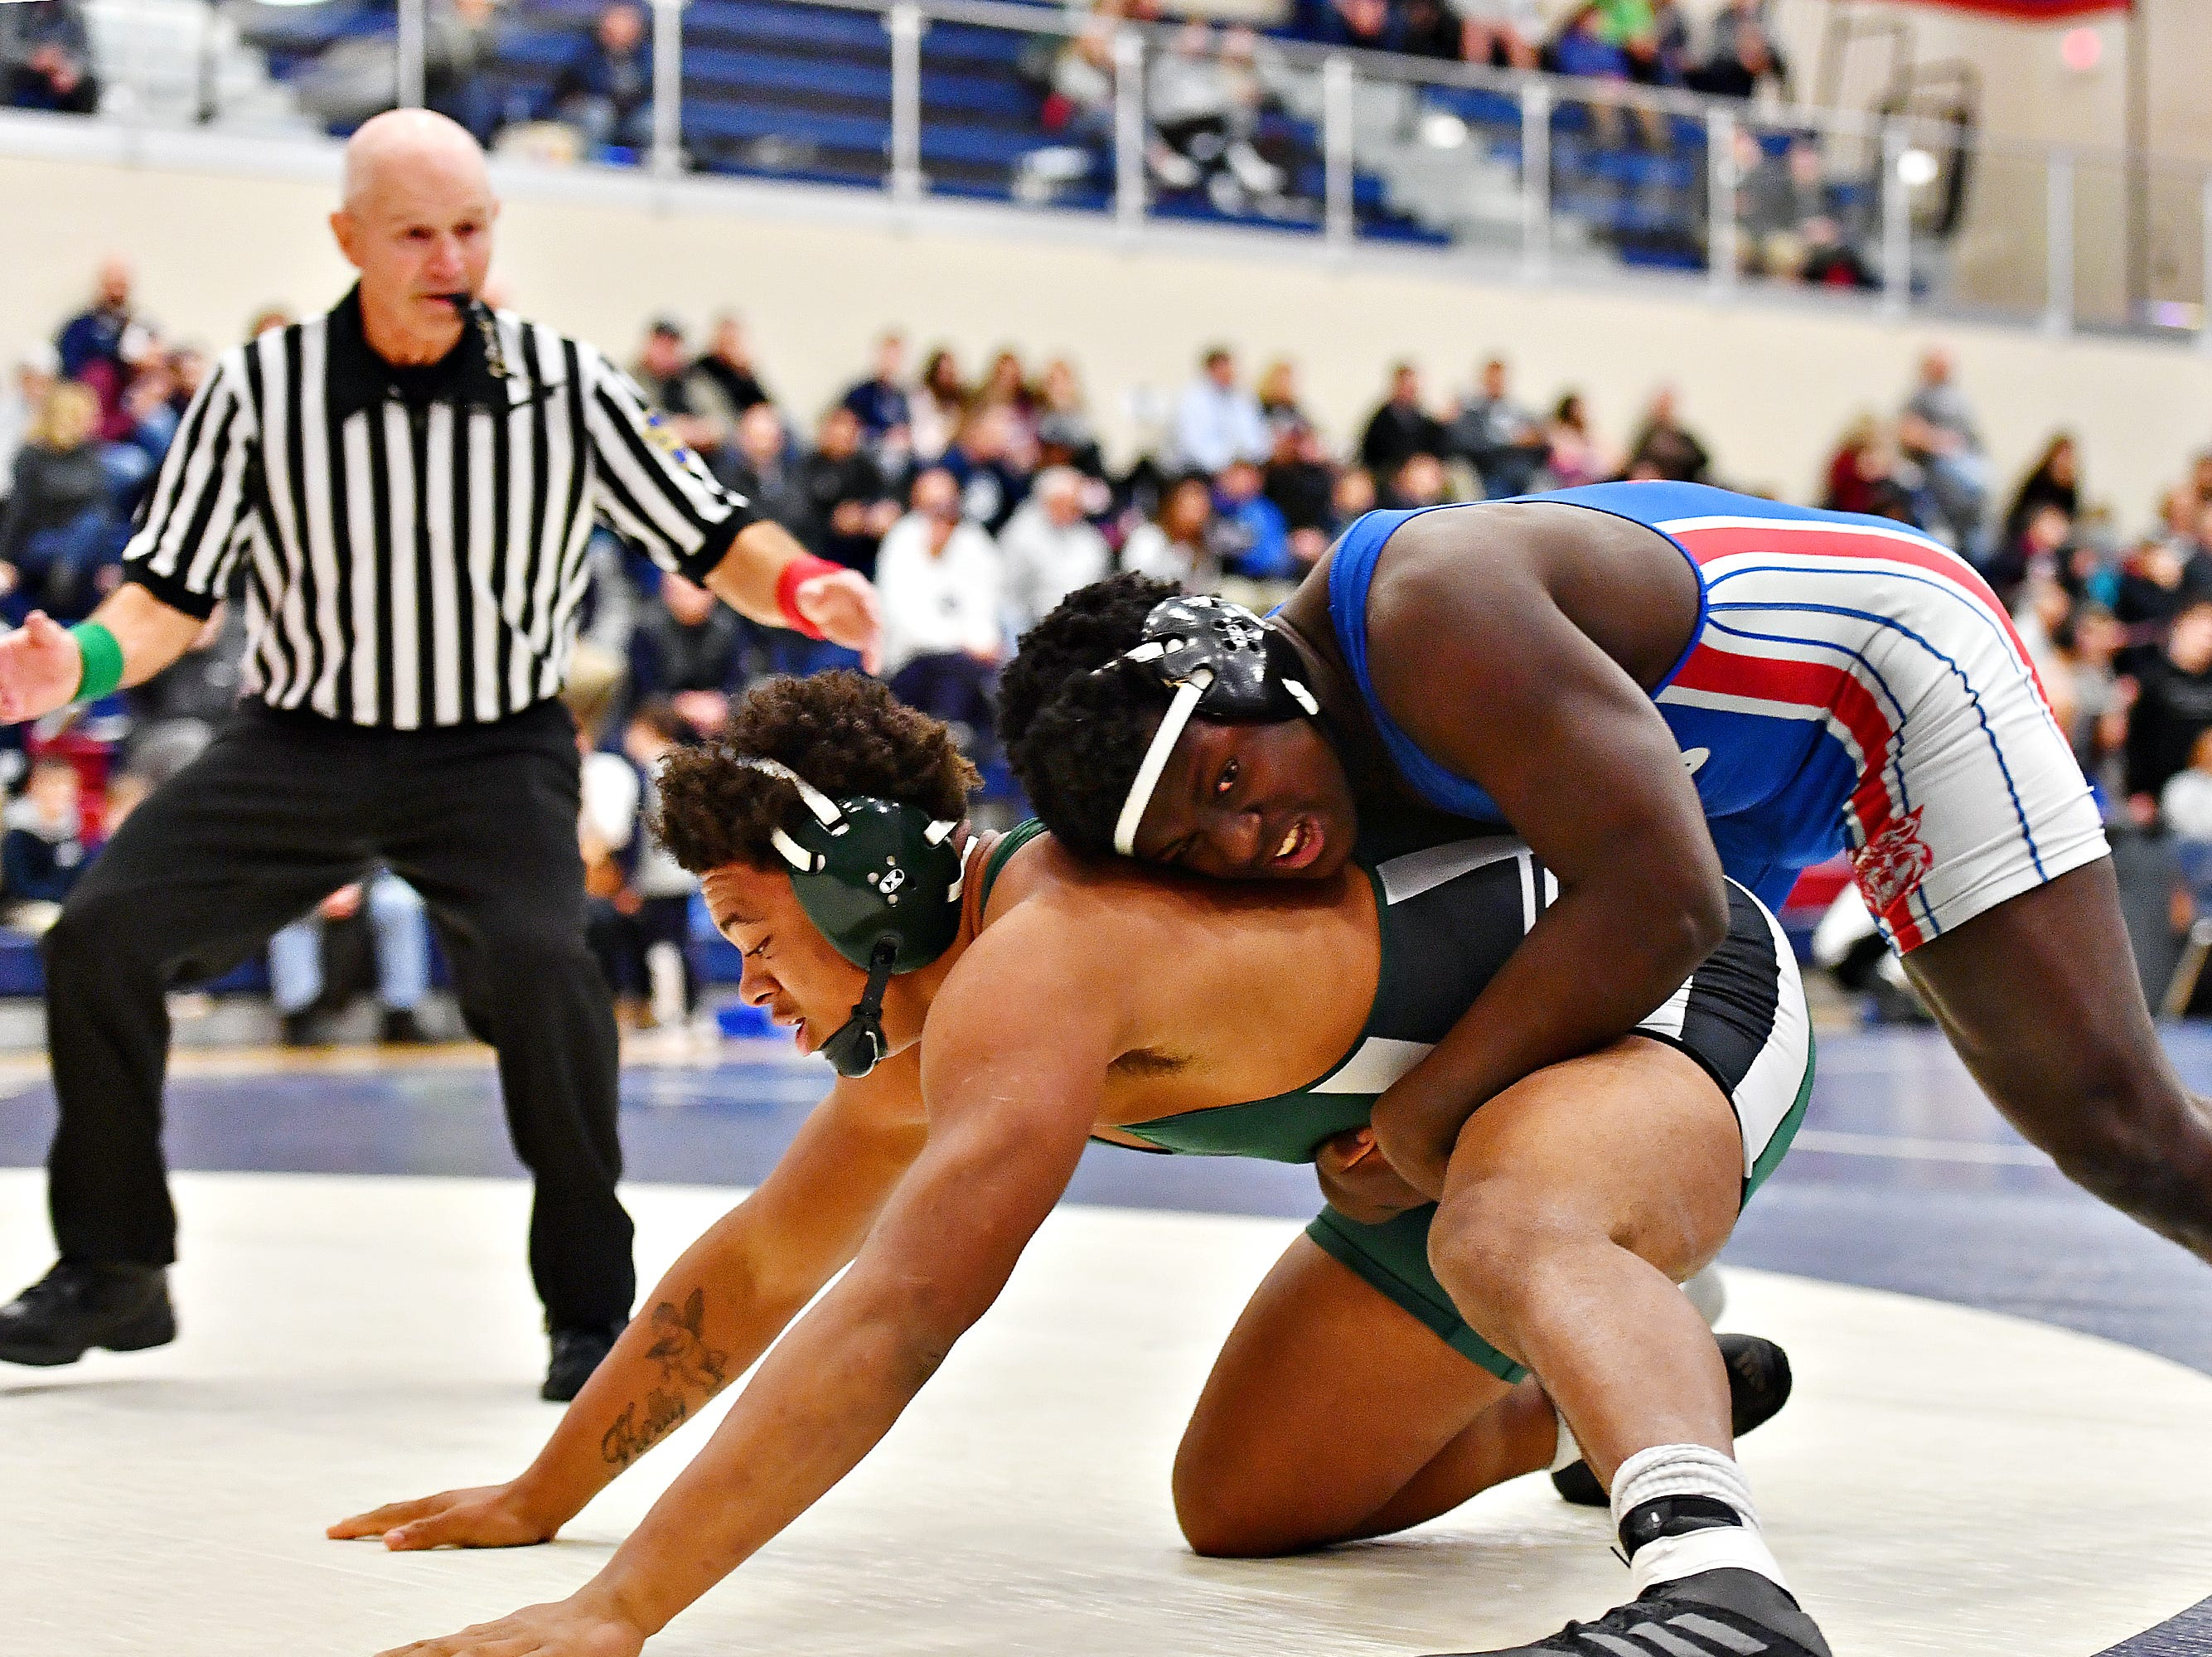 Dallastown's Jamal Brandon, right, wrestles Central Dauphin's Marques Holton in the 220 pound weight class during District 3, Class 3A wrestling semifinal action at Spring Grove Area High School in Jackson Township, Thursday, Jan. 31, 2019. Dawn J. Sagert photo